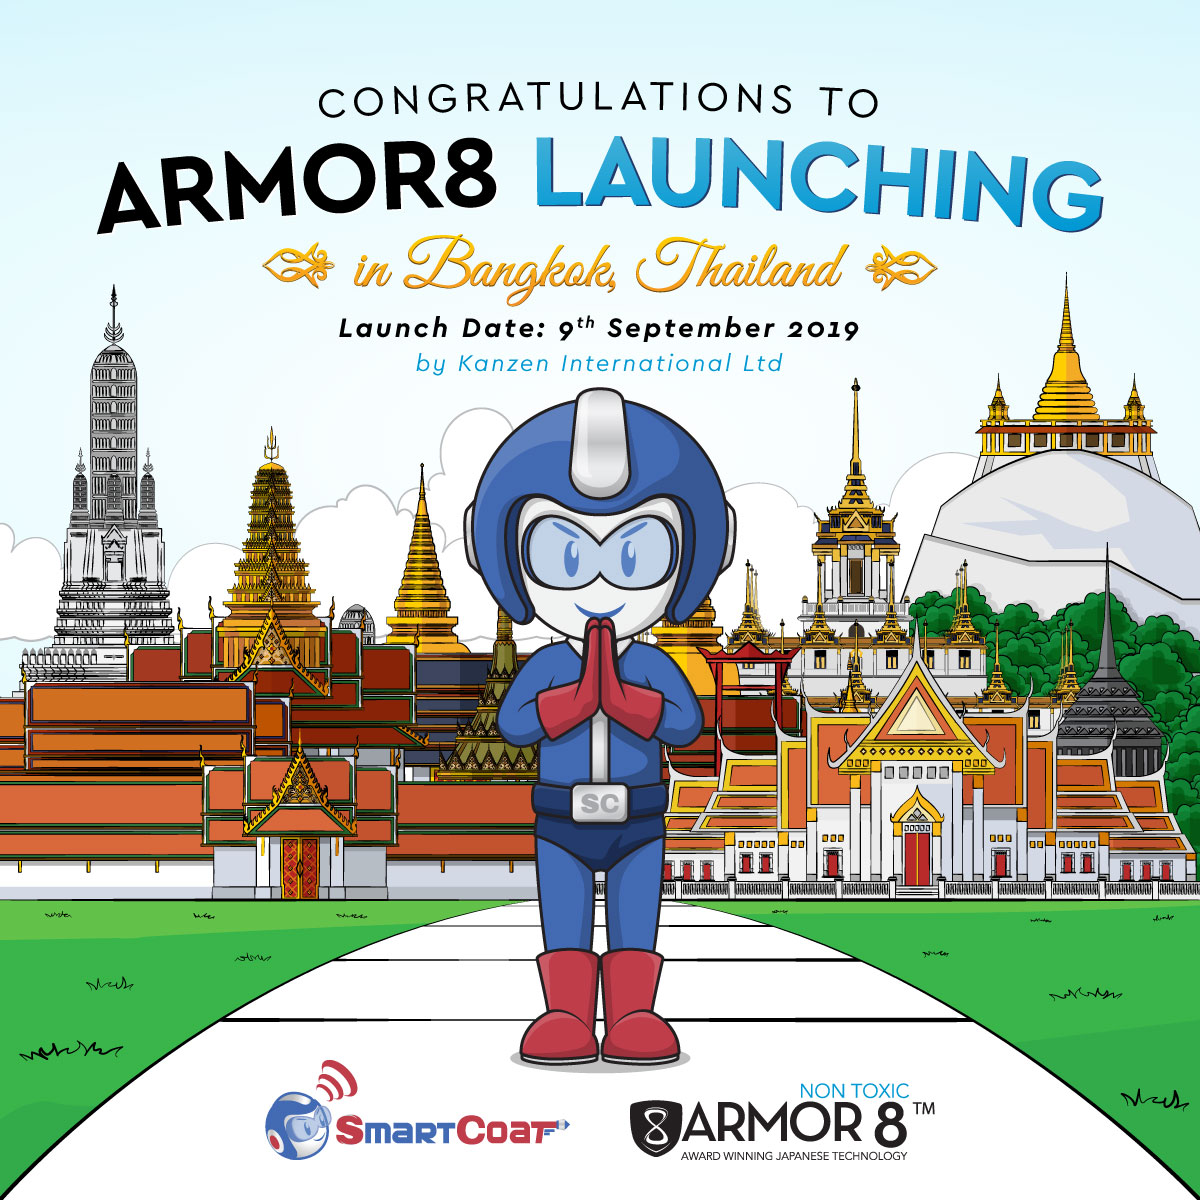 Armor8 Launching in Bangkok Celebration Facebook Post Design 04